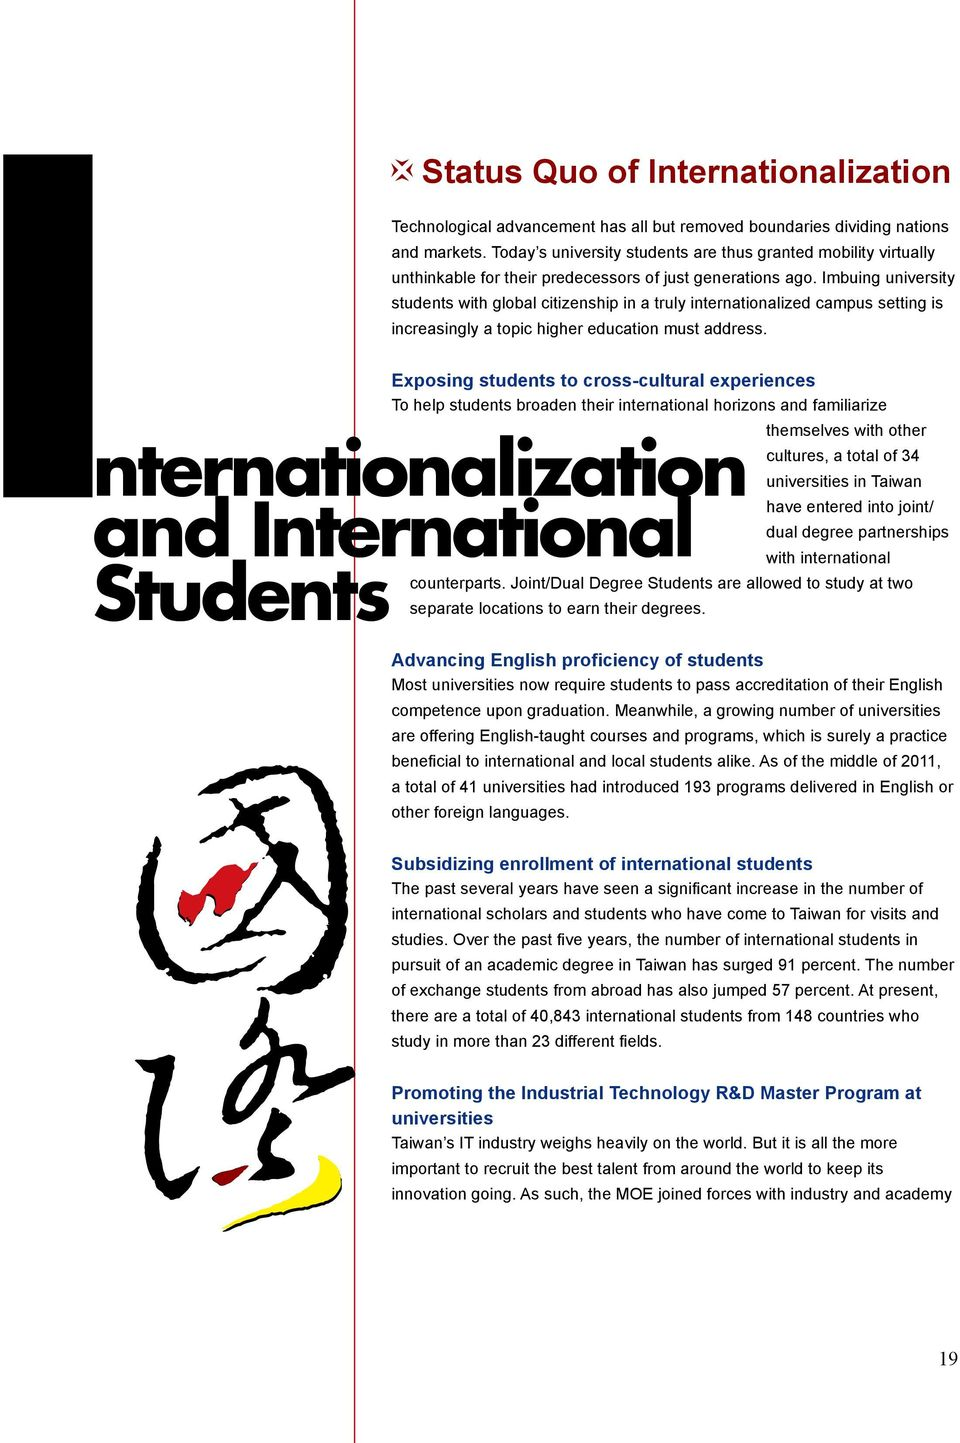 Imbuing university students with global citizenship in a truly internationalized campus setting is increasingly a topic higher education must address.